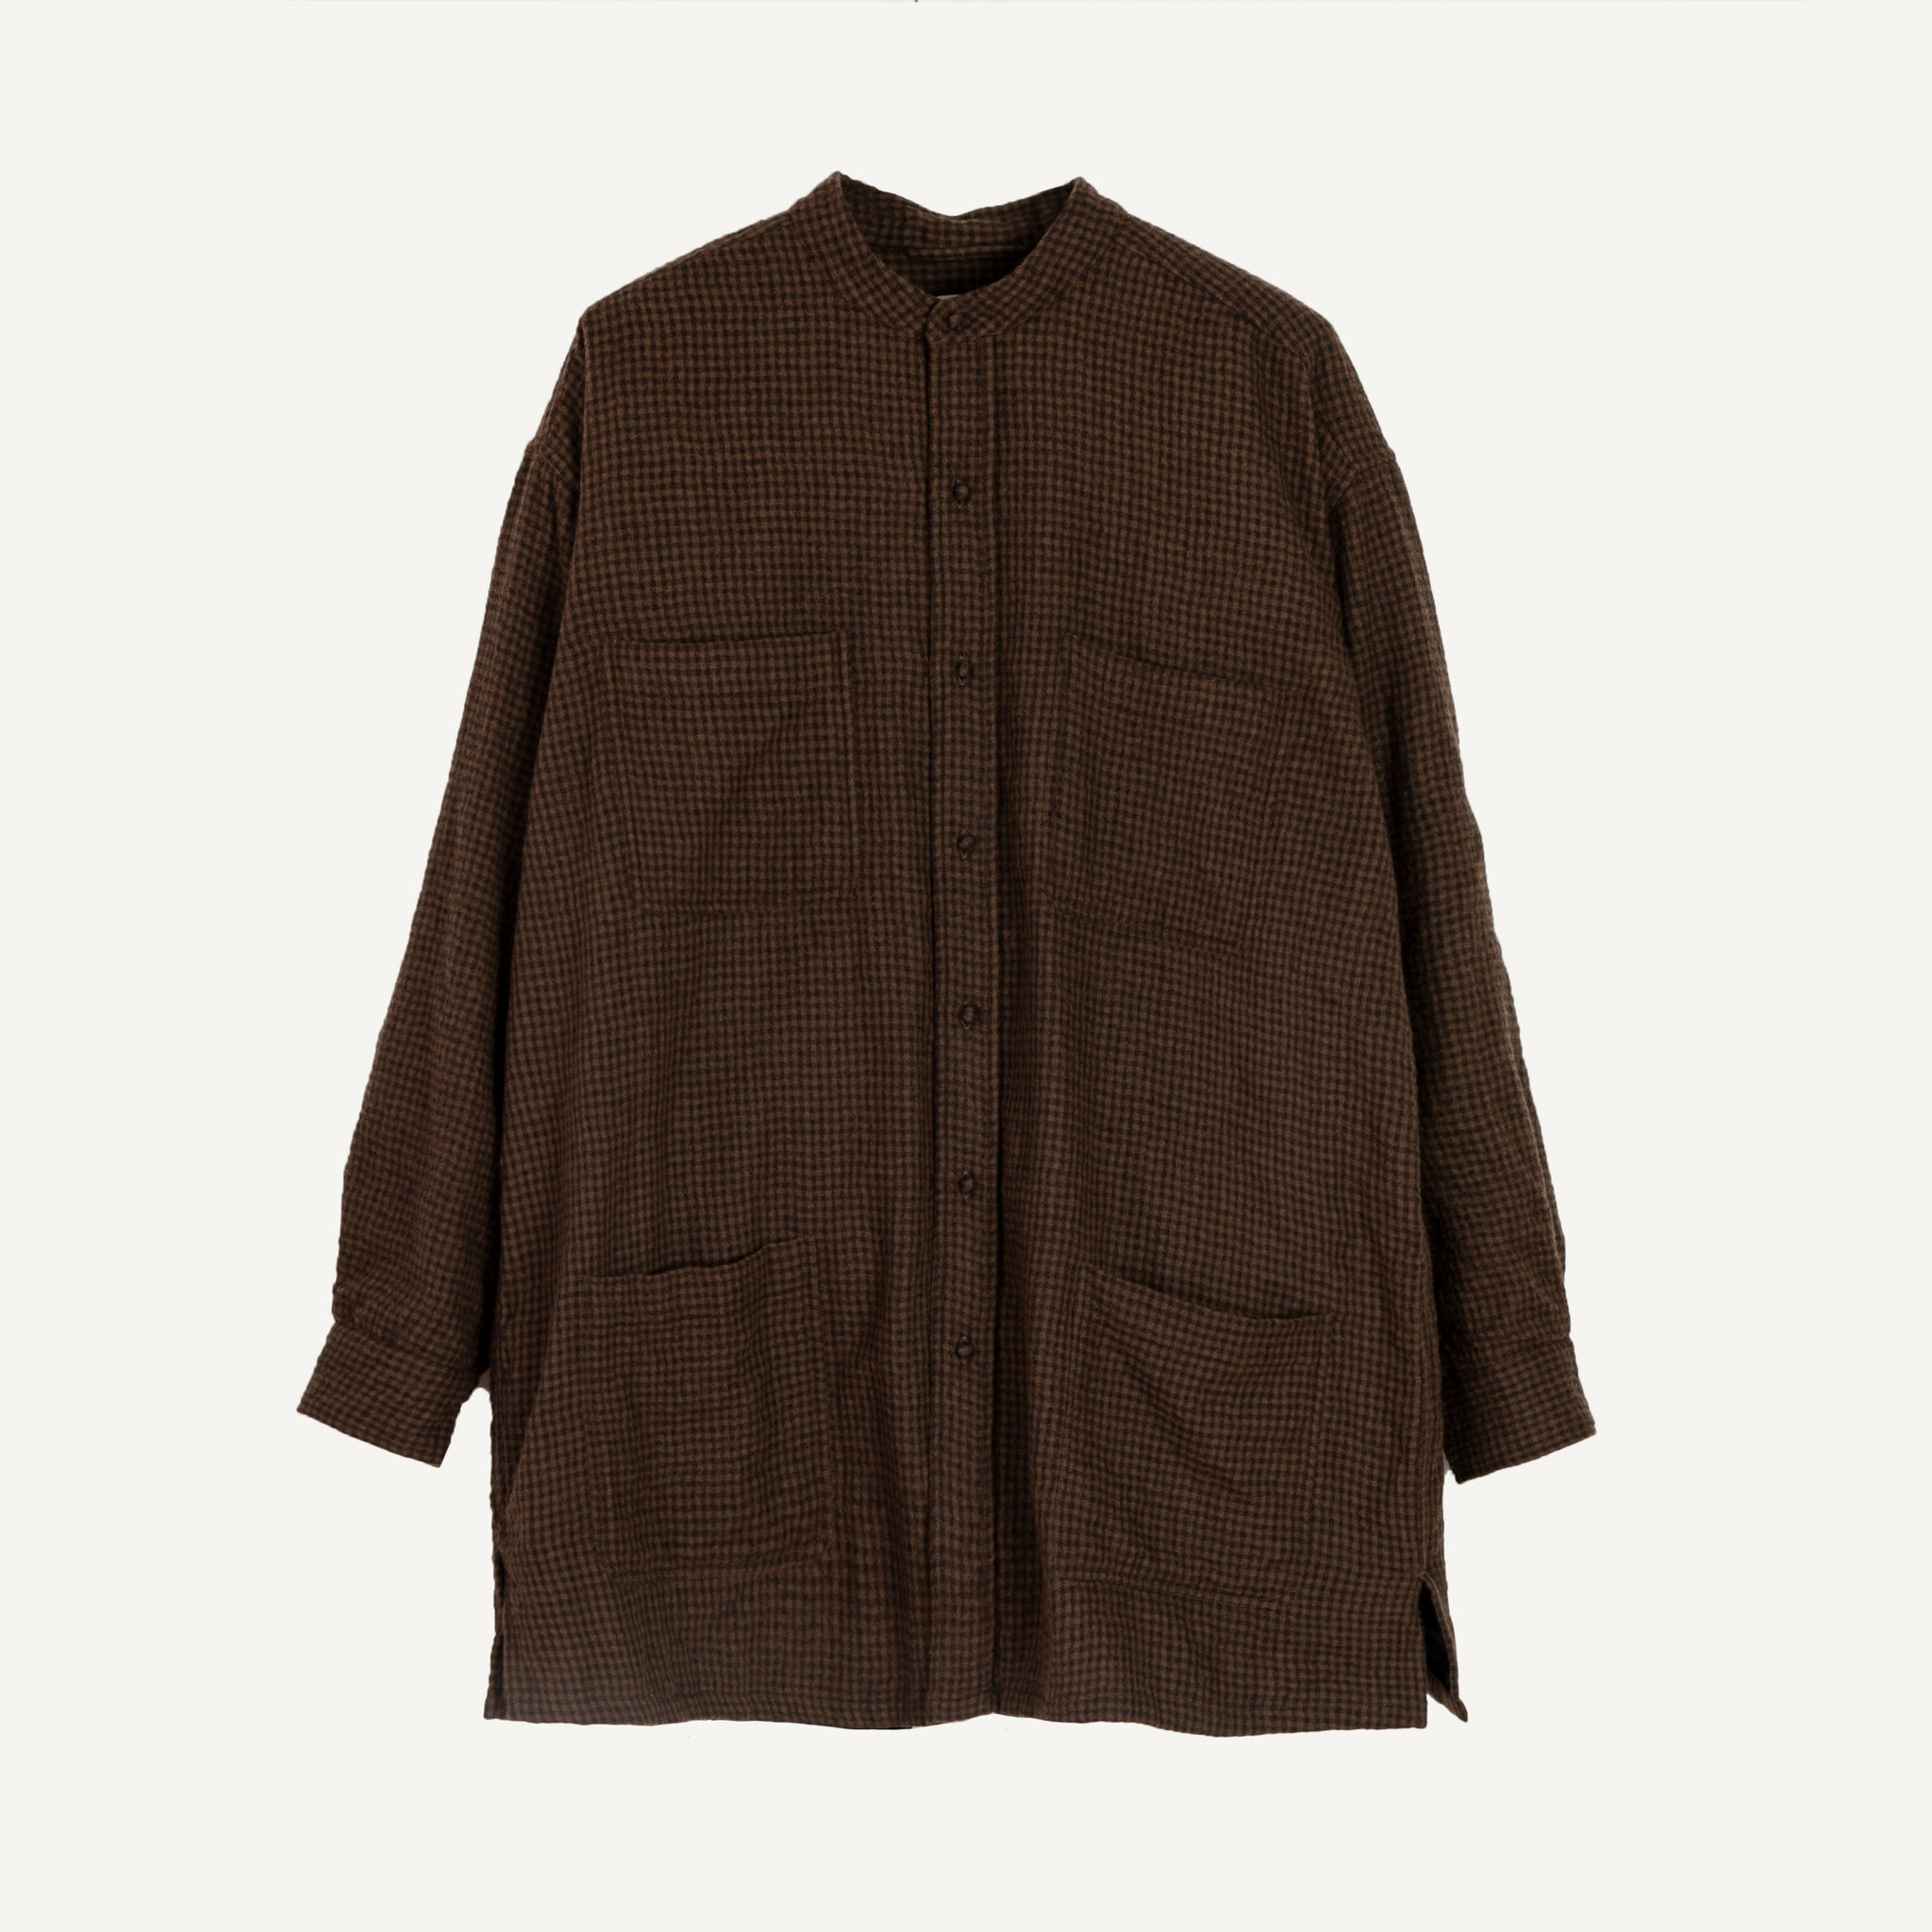 MAISON DE SOIL WOOL OVERSHIRT